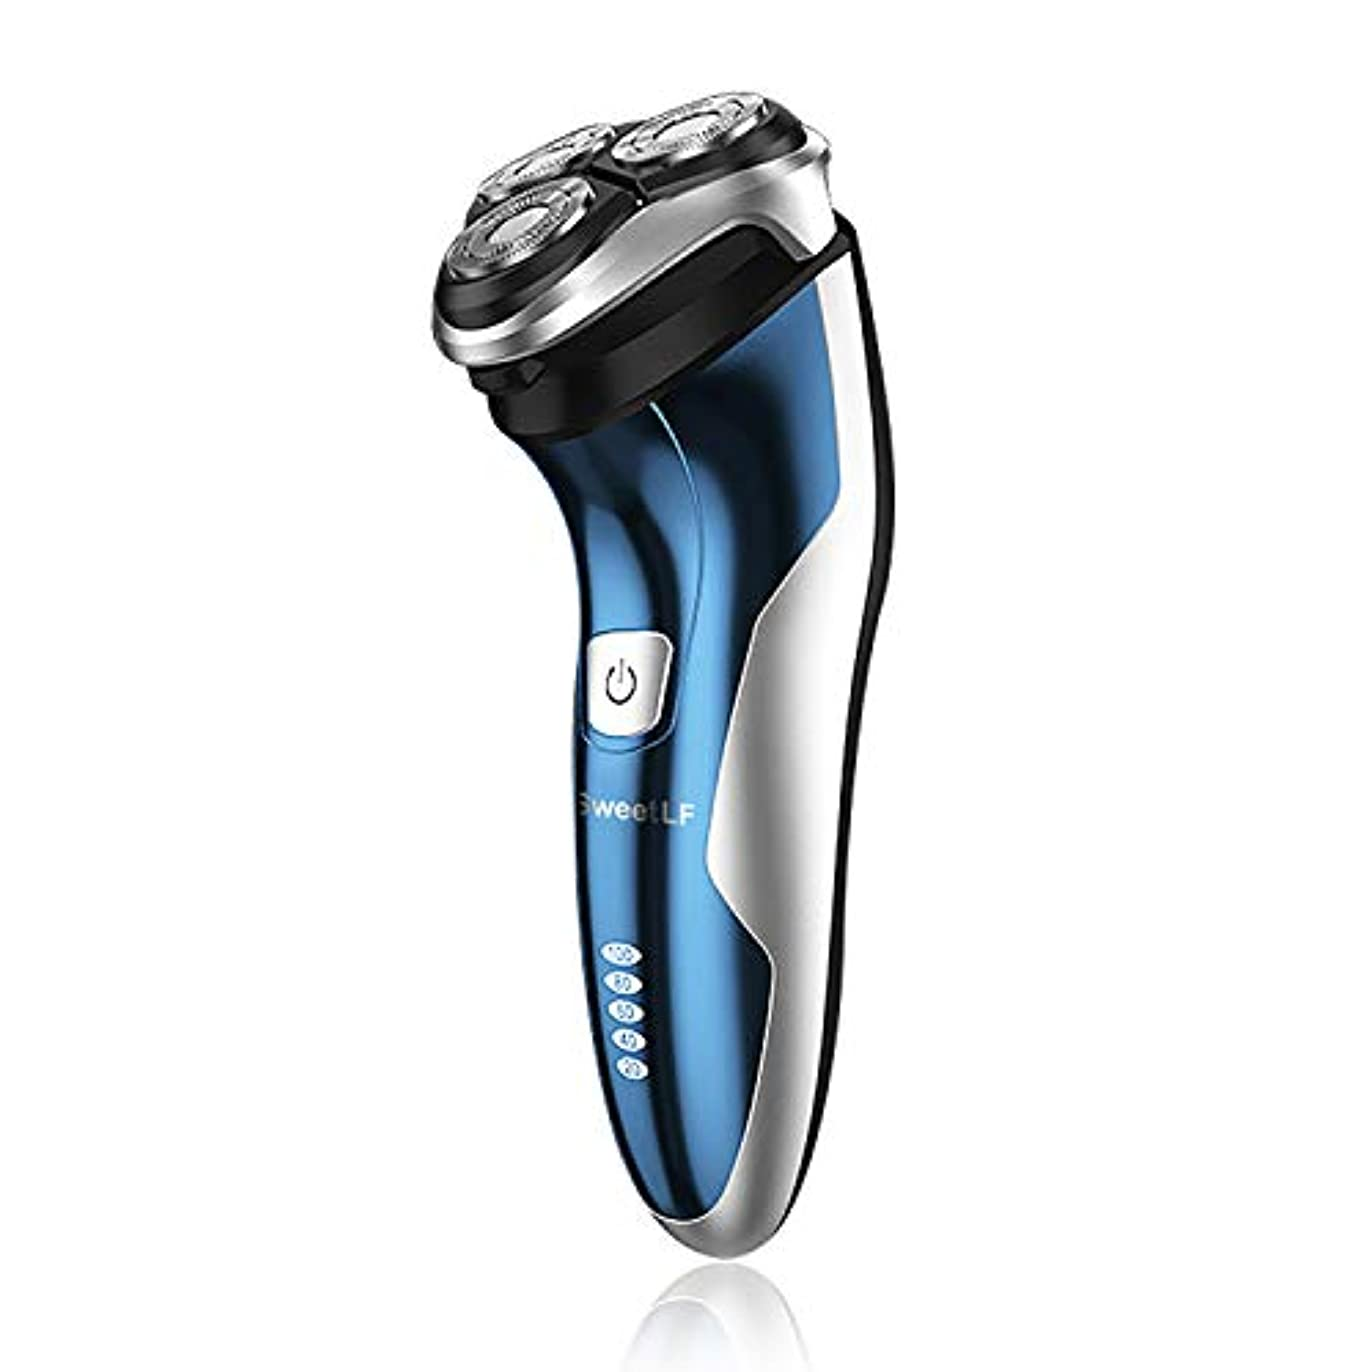 SweetLF Electric Shaver Rotary Shaver for Men Wet Dry Waterproof 2 in 1 Beard Trimmer Cordless Electric Razor...